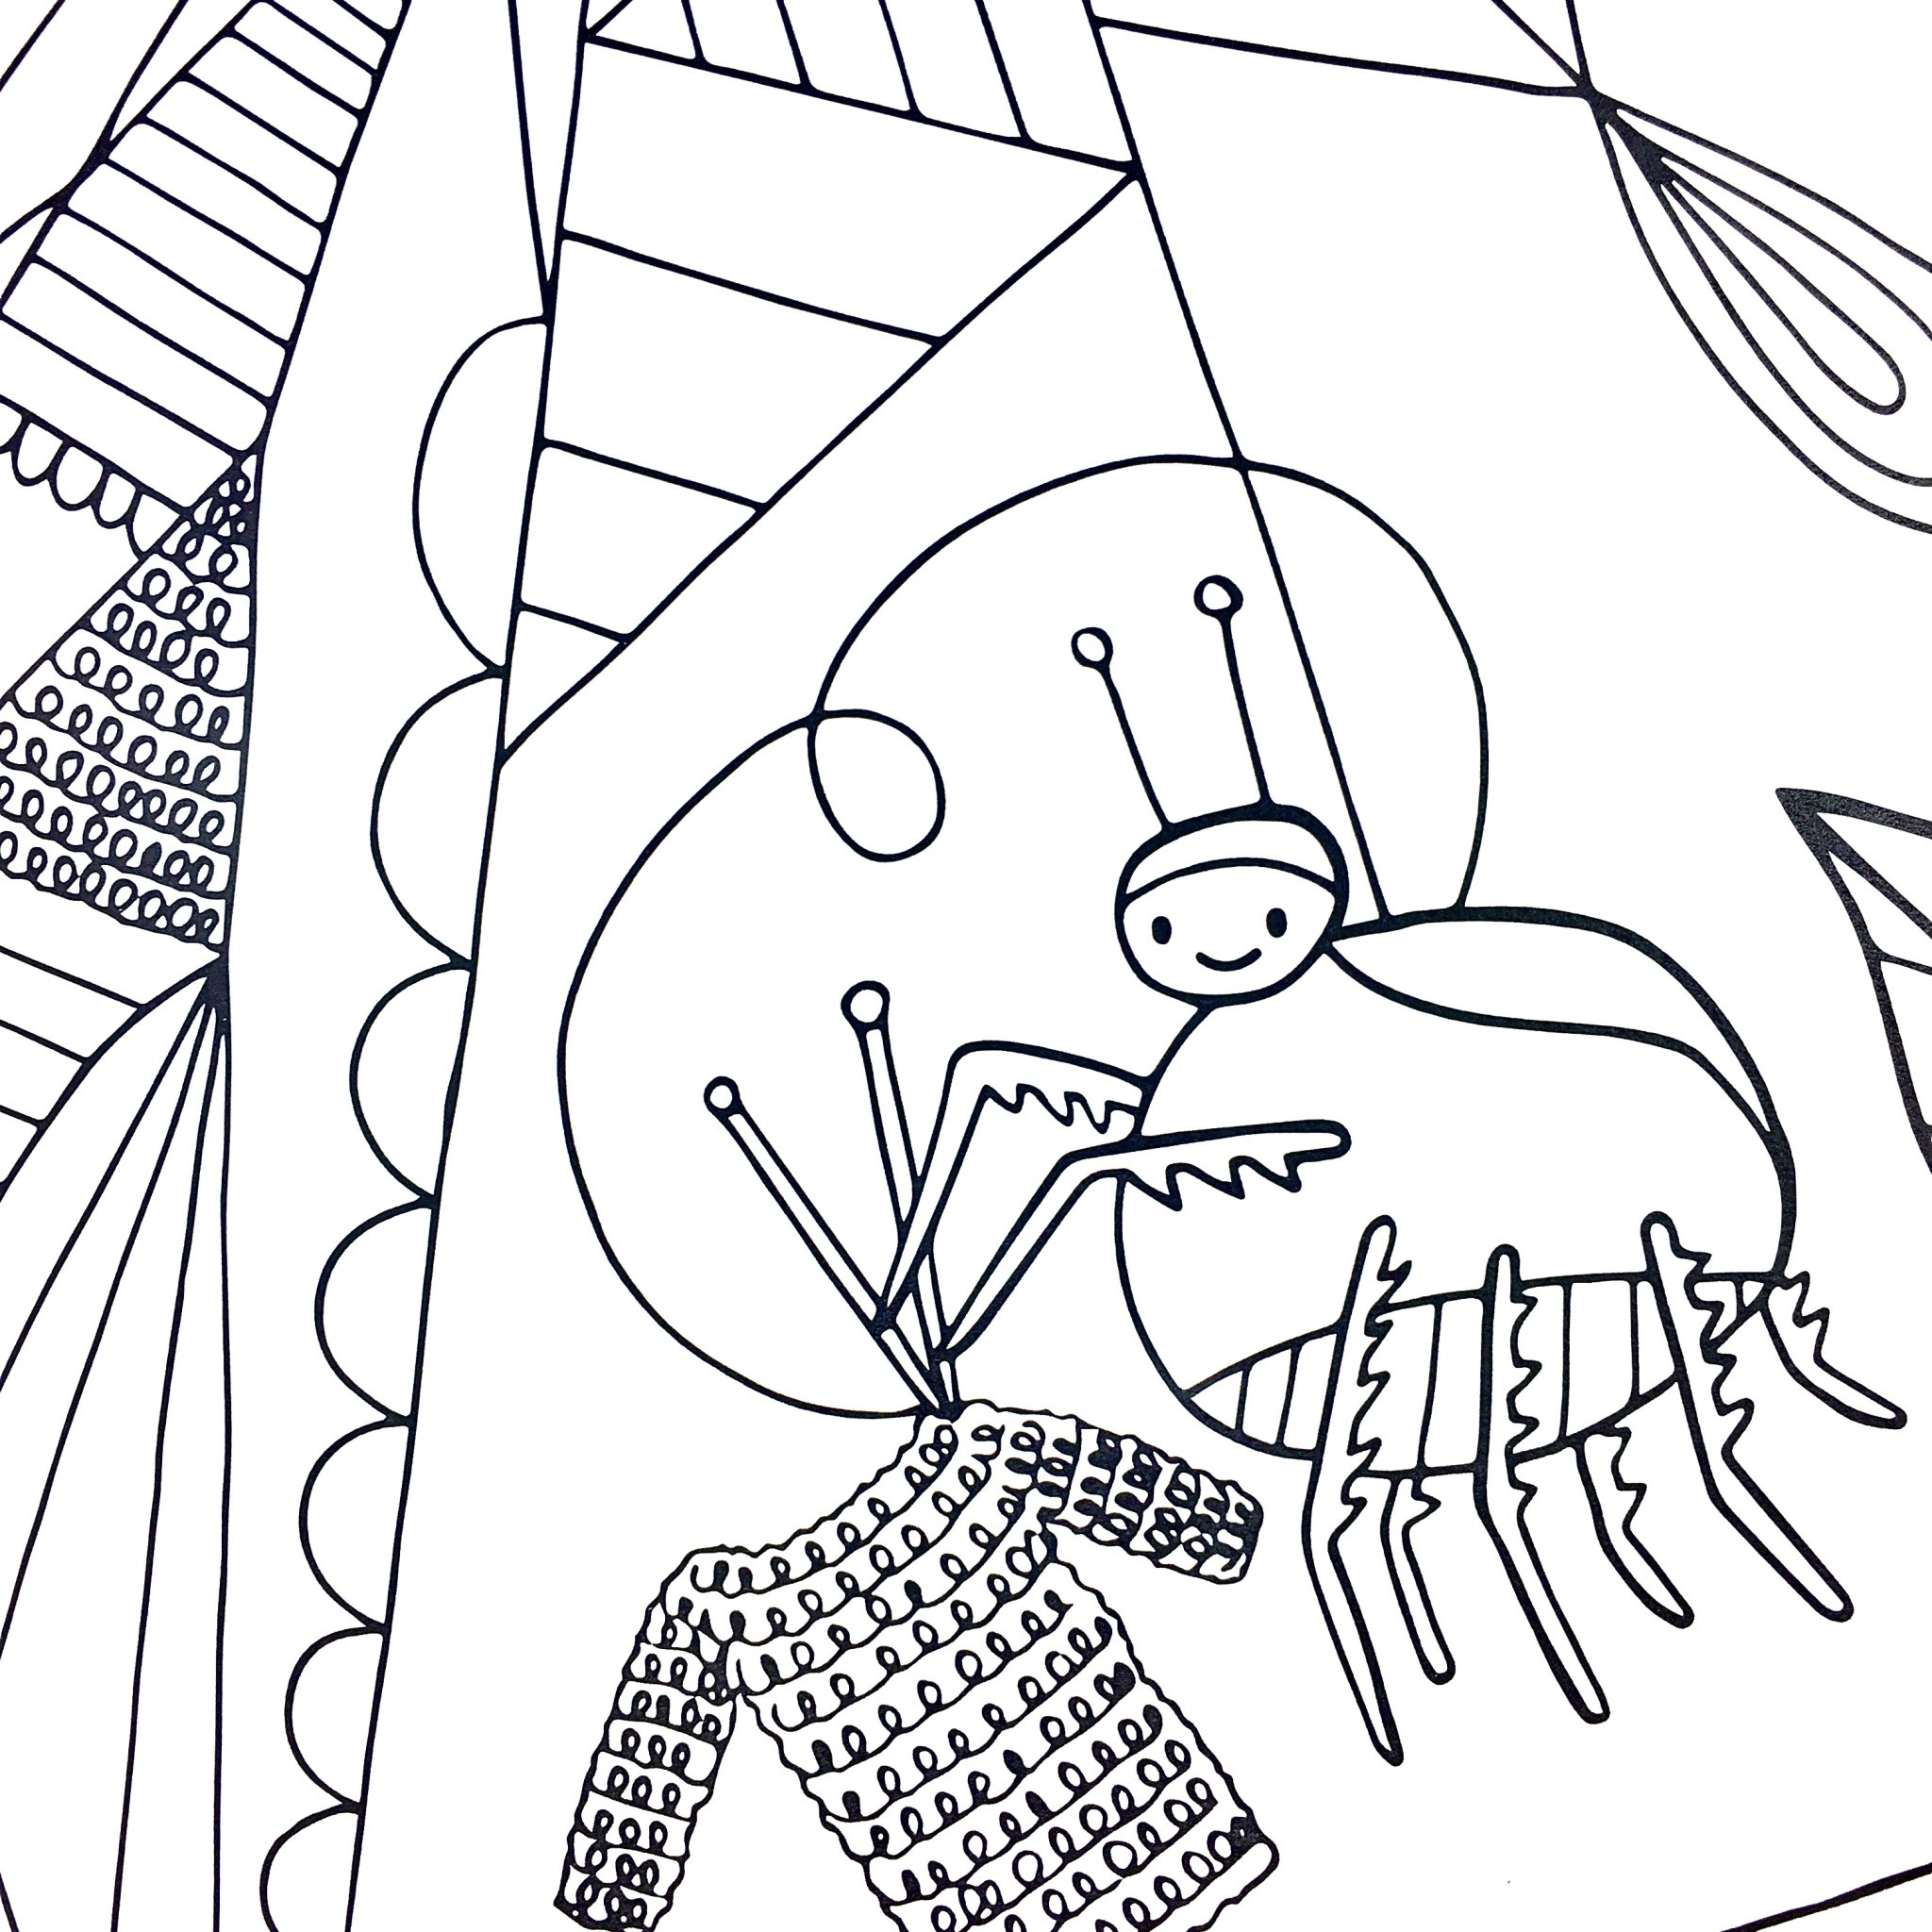 Cordial Kitten Imaginary Bugs Coloring Book